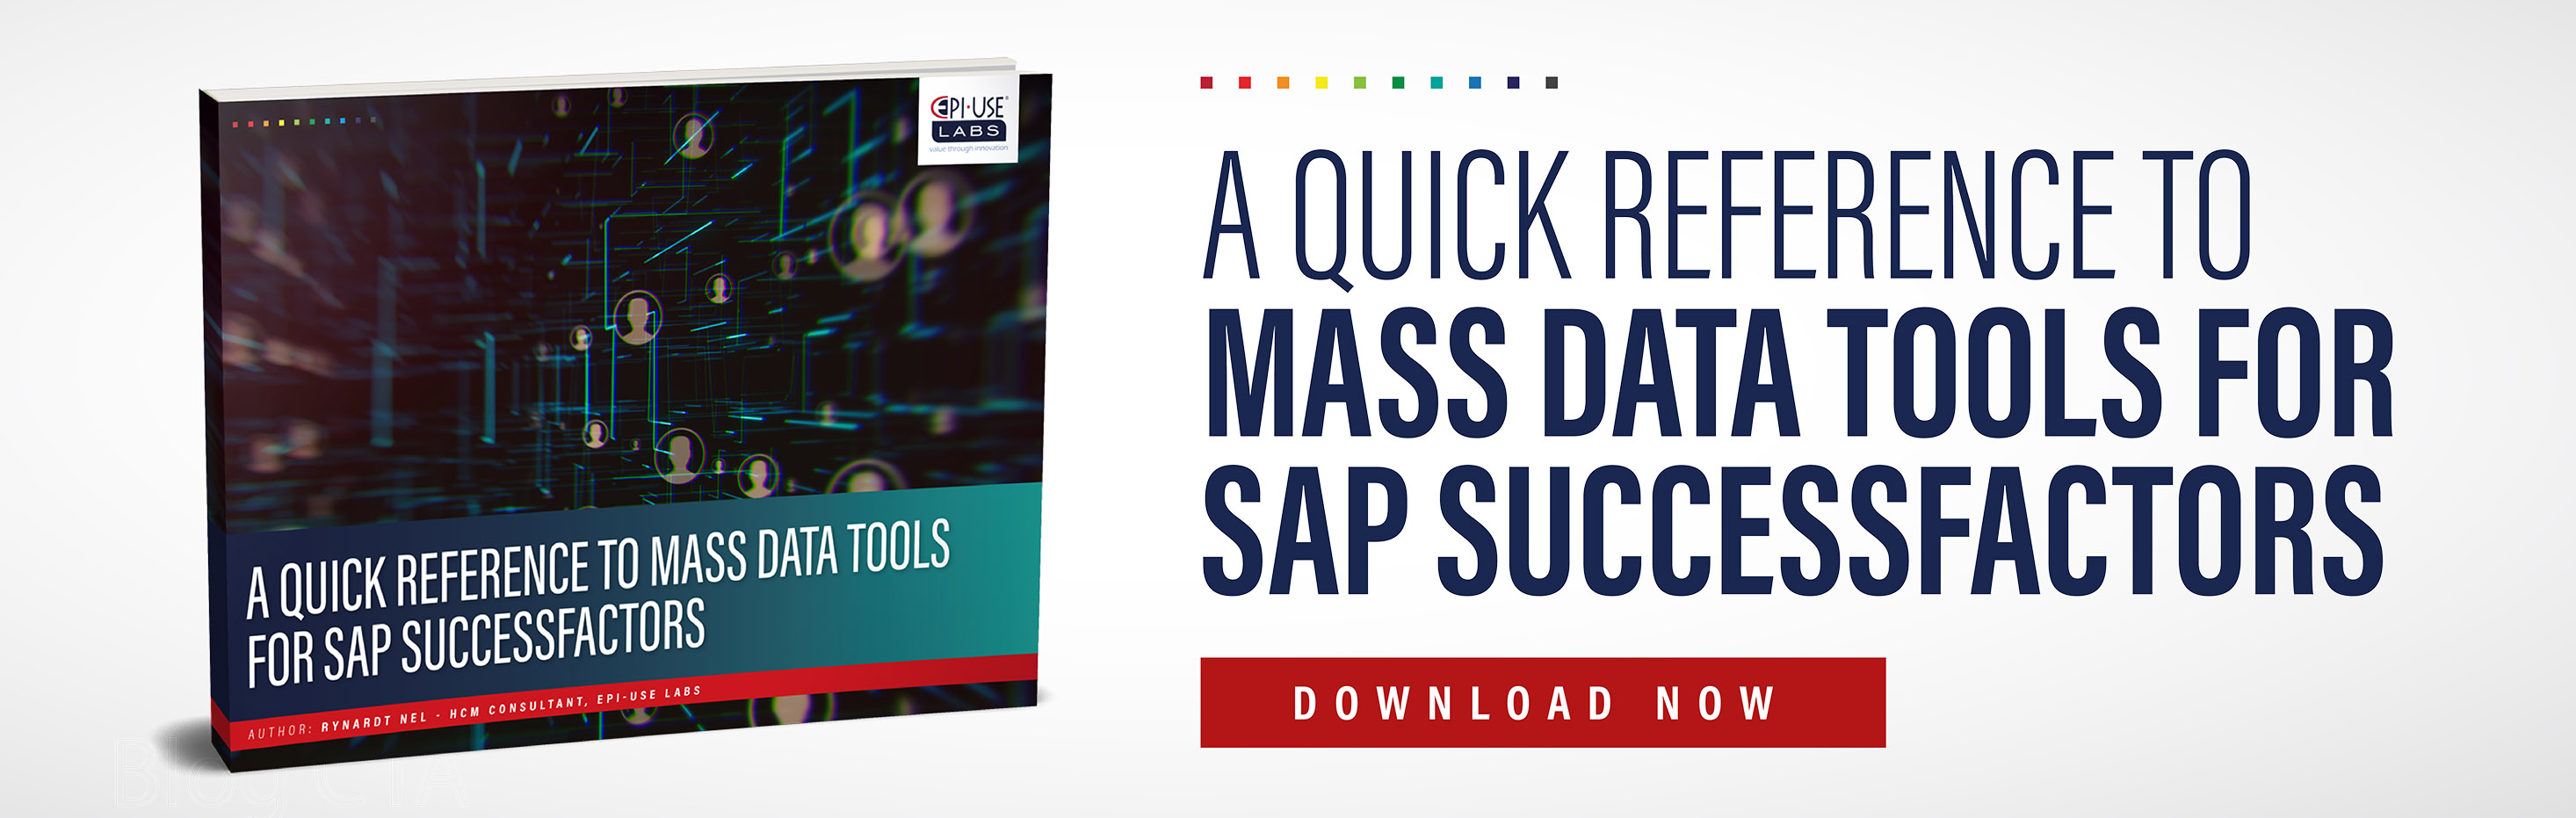 A quick reference to Mass Data Tools for SAP SuccessFactors